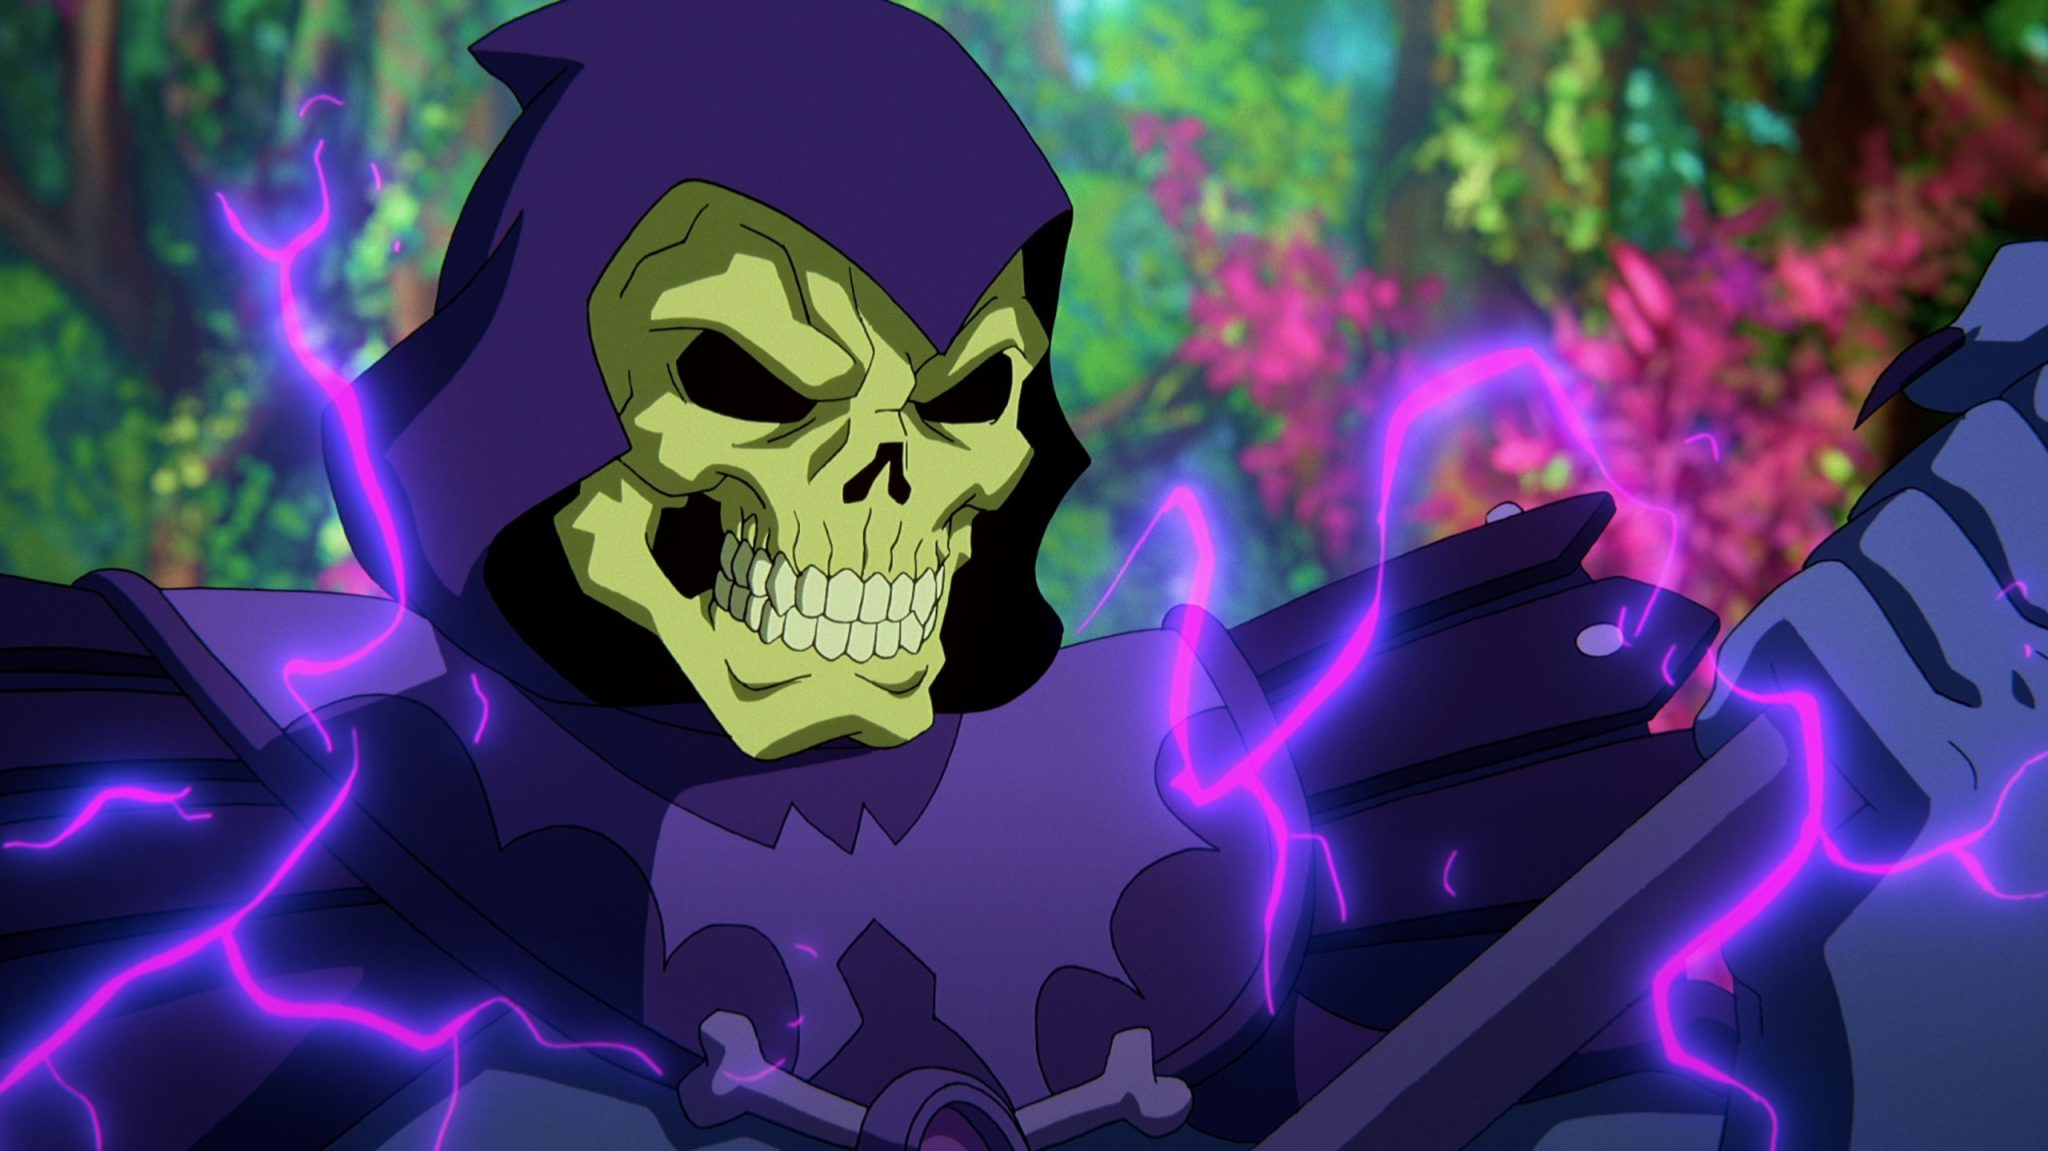 MastersoftheUniverse Revelation Part1 Episode1 00 15 51 11 scaled 1 First Images Released From Netflix's New He-Man Cartoon